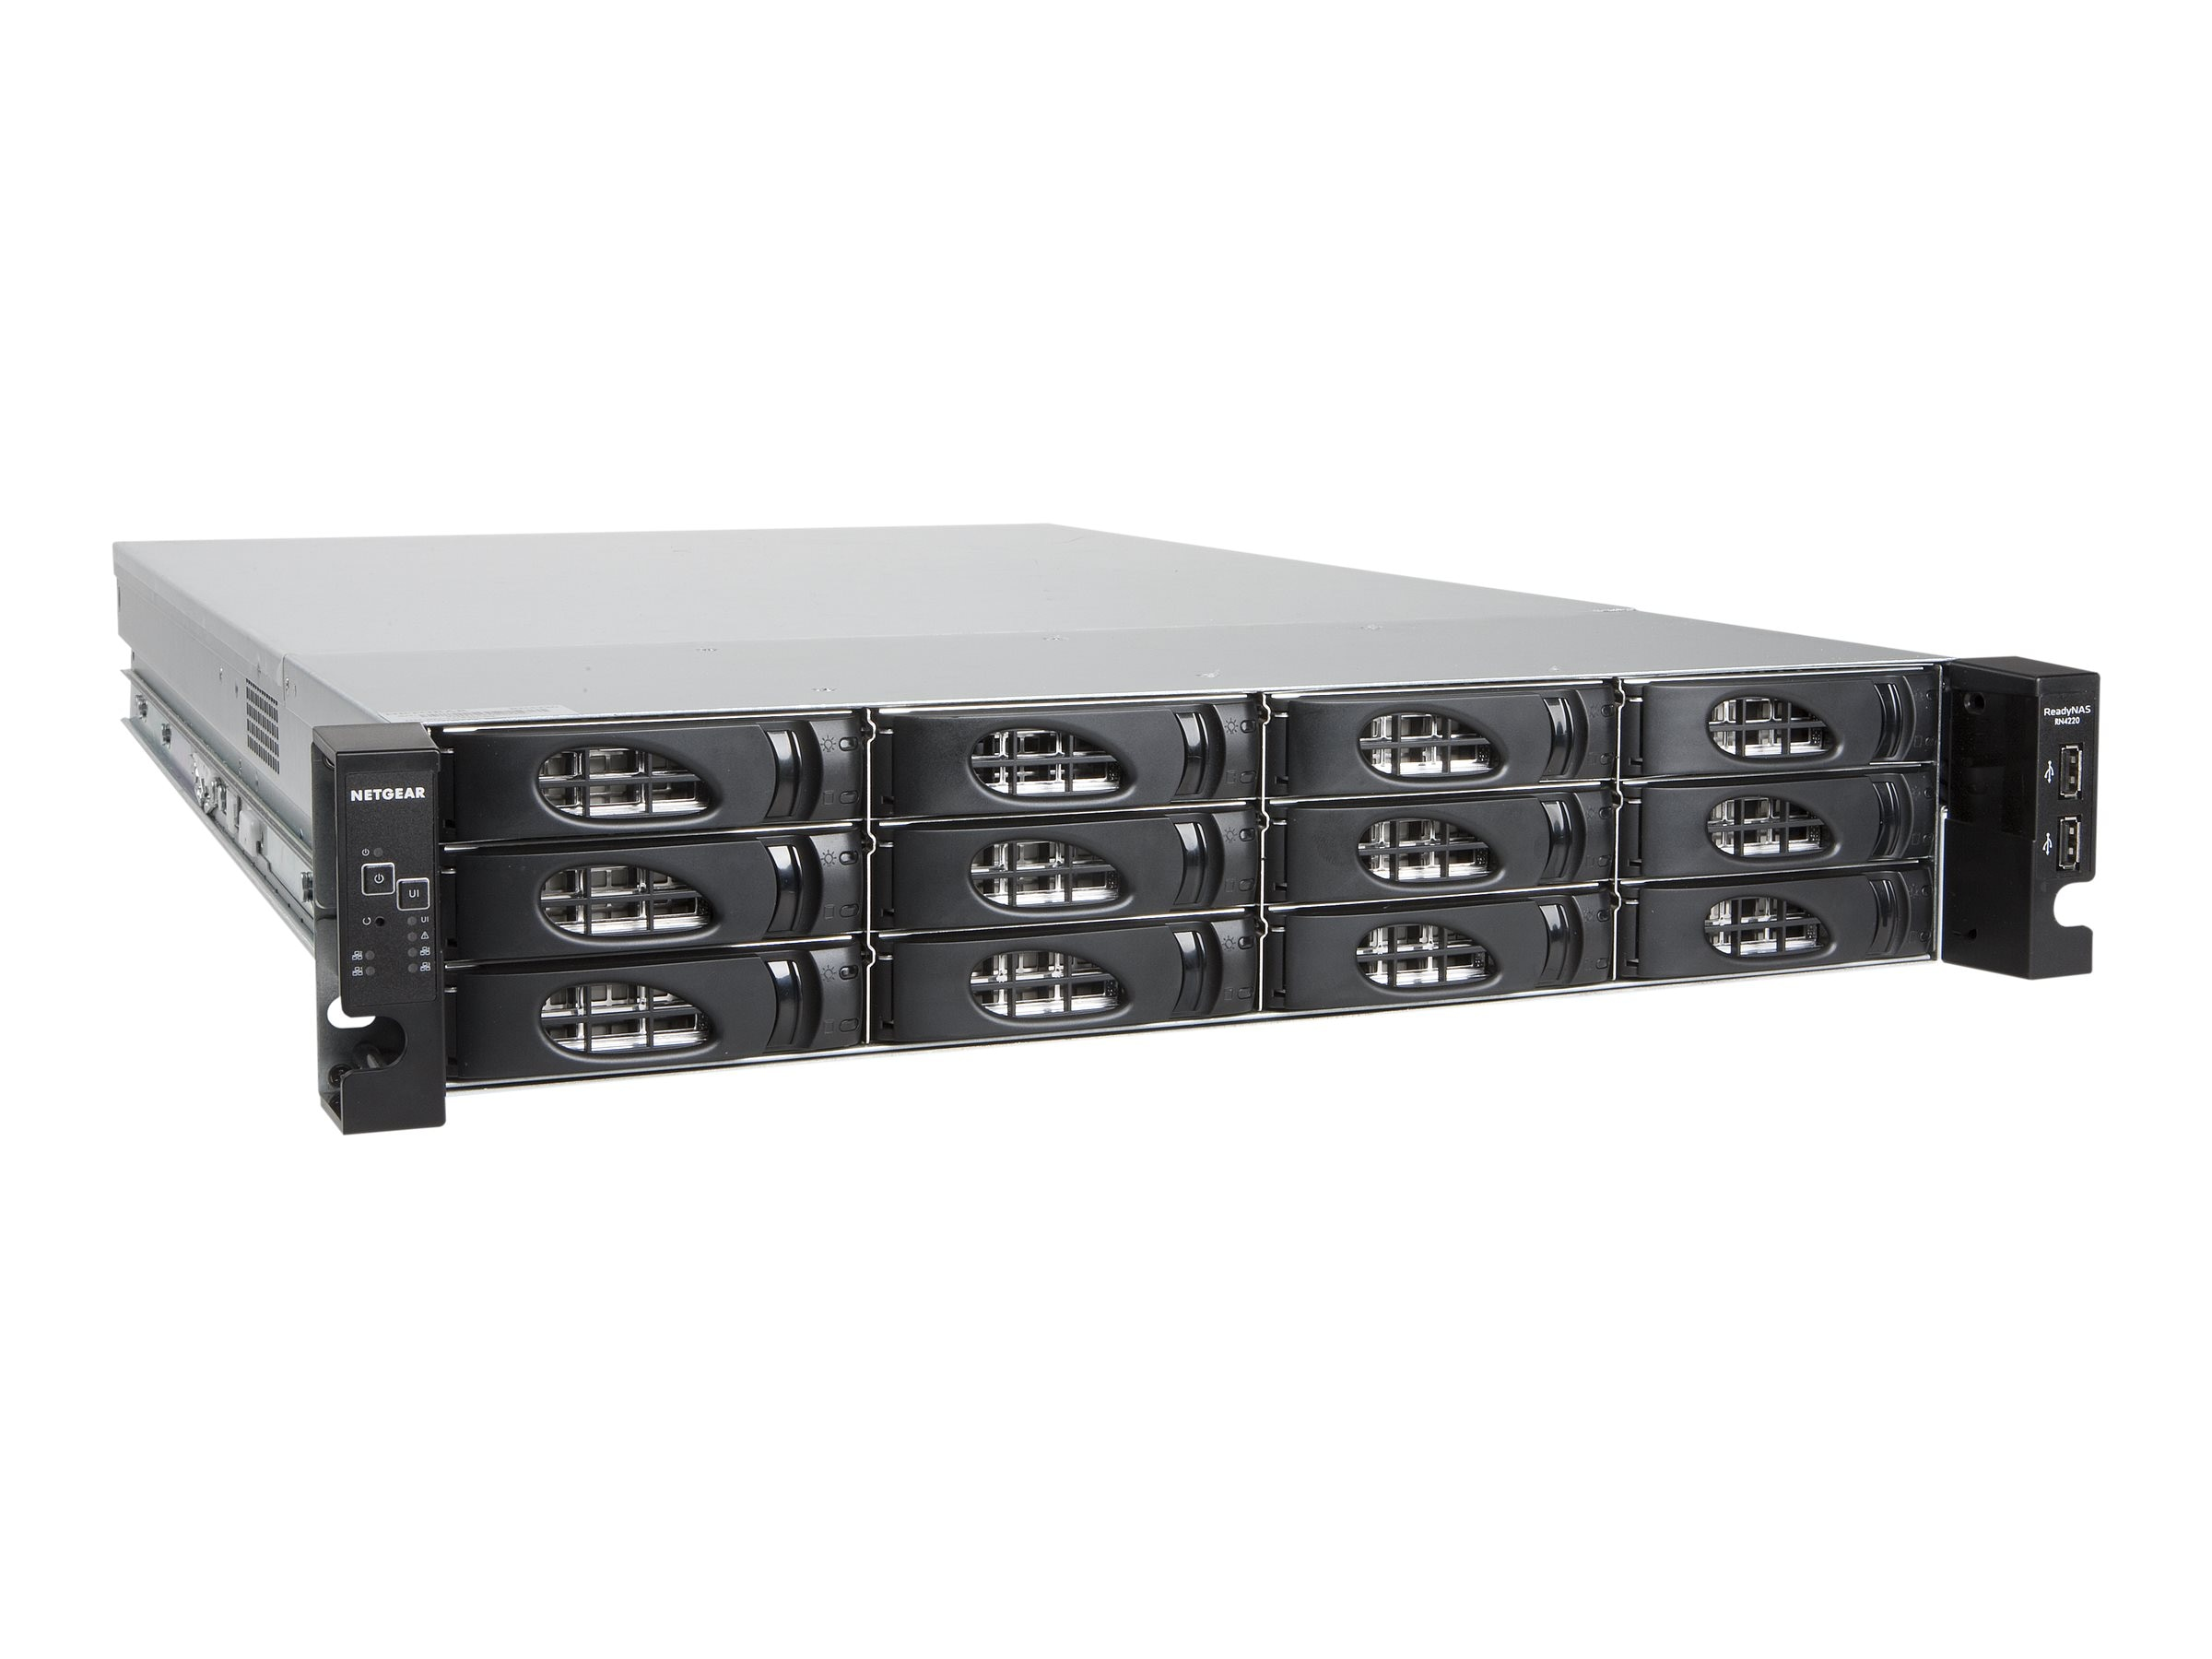 Netgear 4220X, 2U 10GBaseT 12X3TB ENT, RN422X123-100NES, 16055735, Network Attached Storage